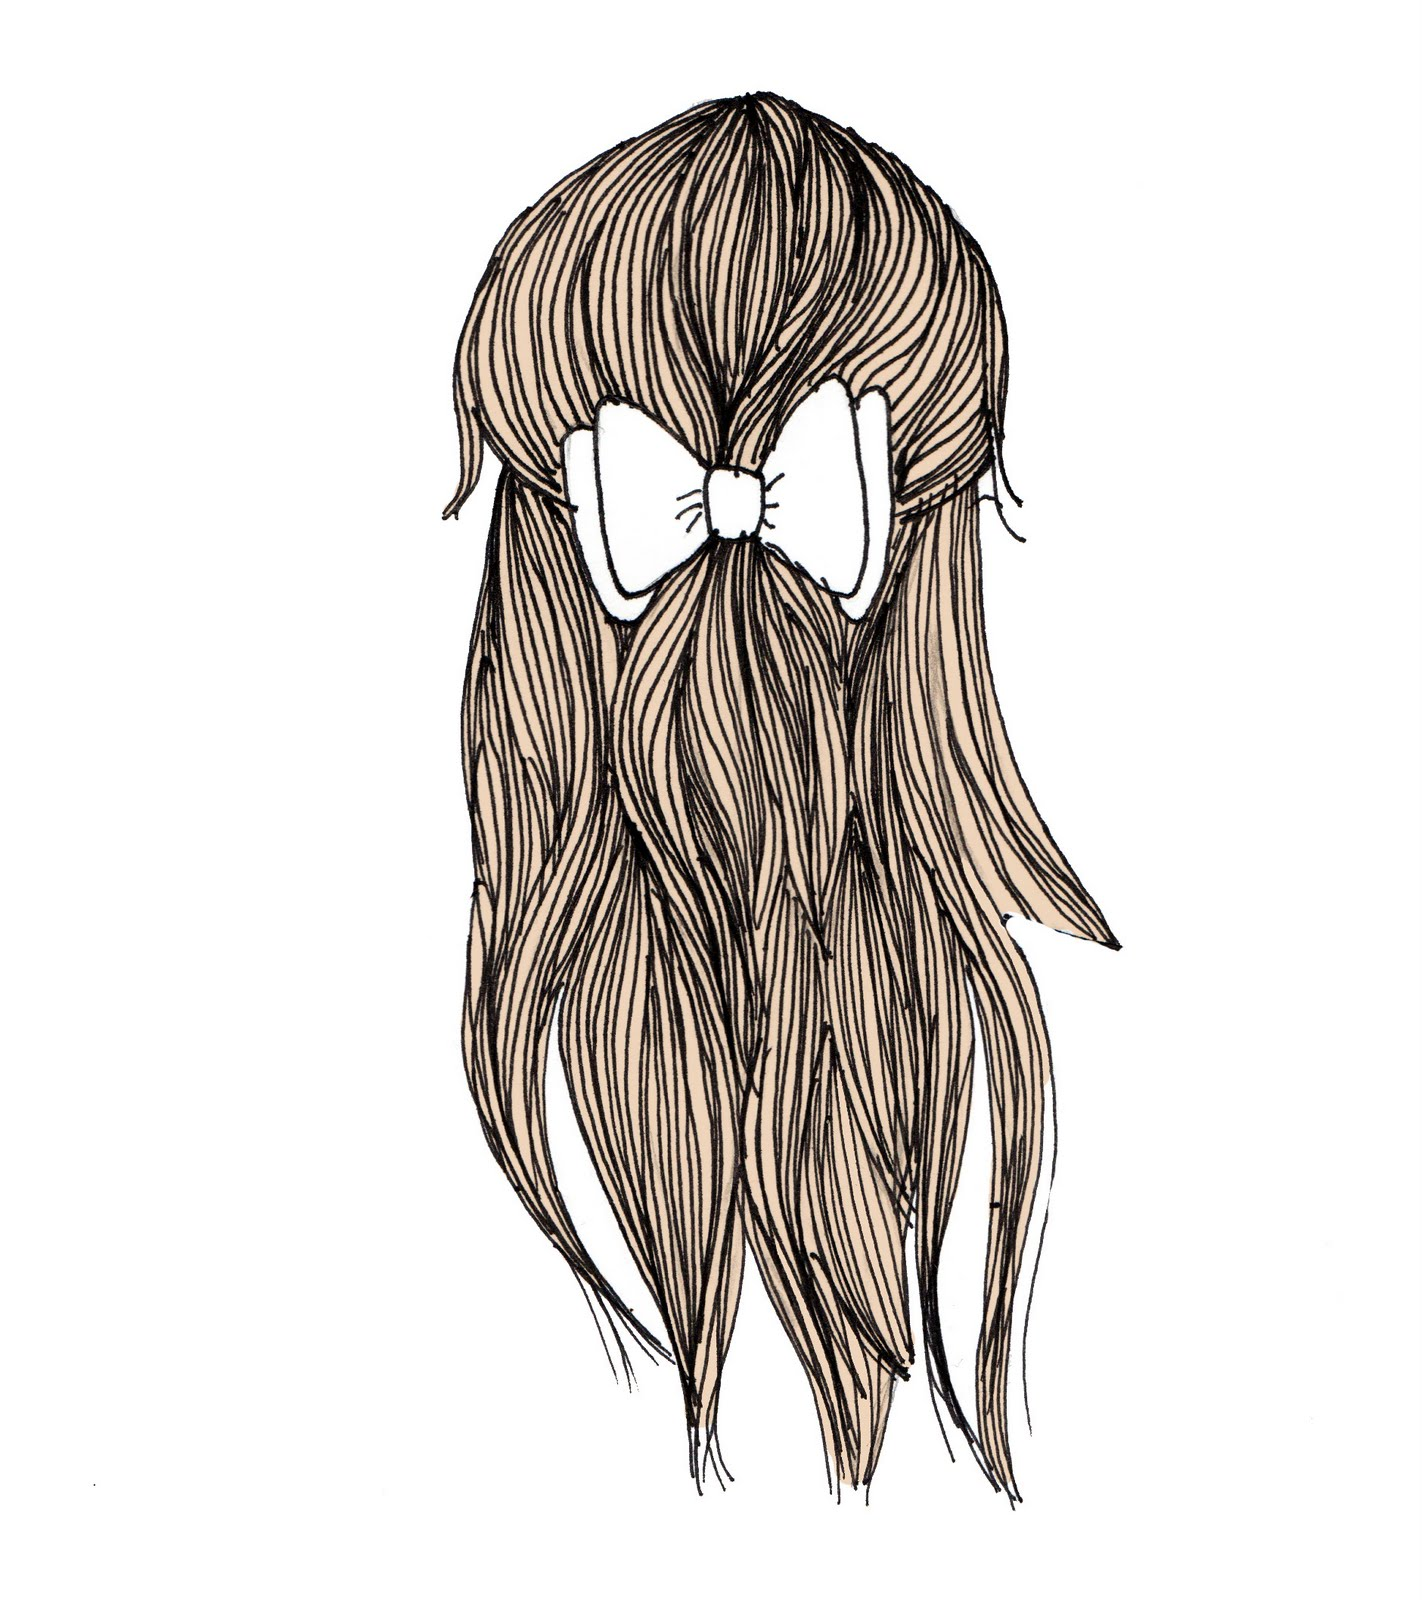 I can't think of a cool blog title: Drawing hair